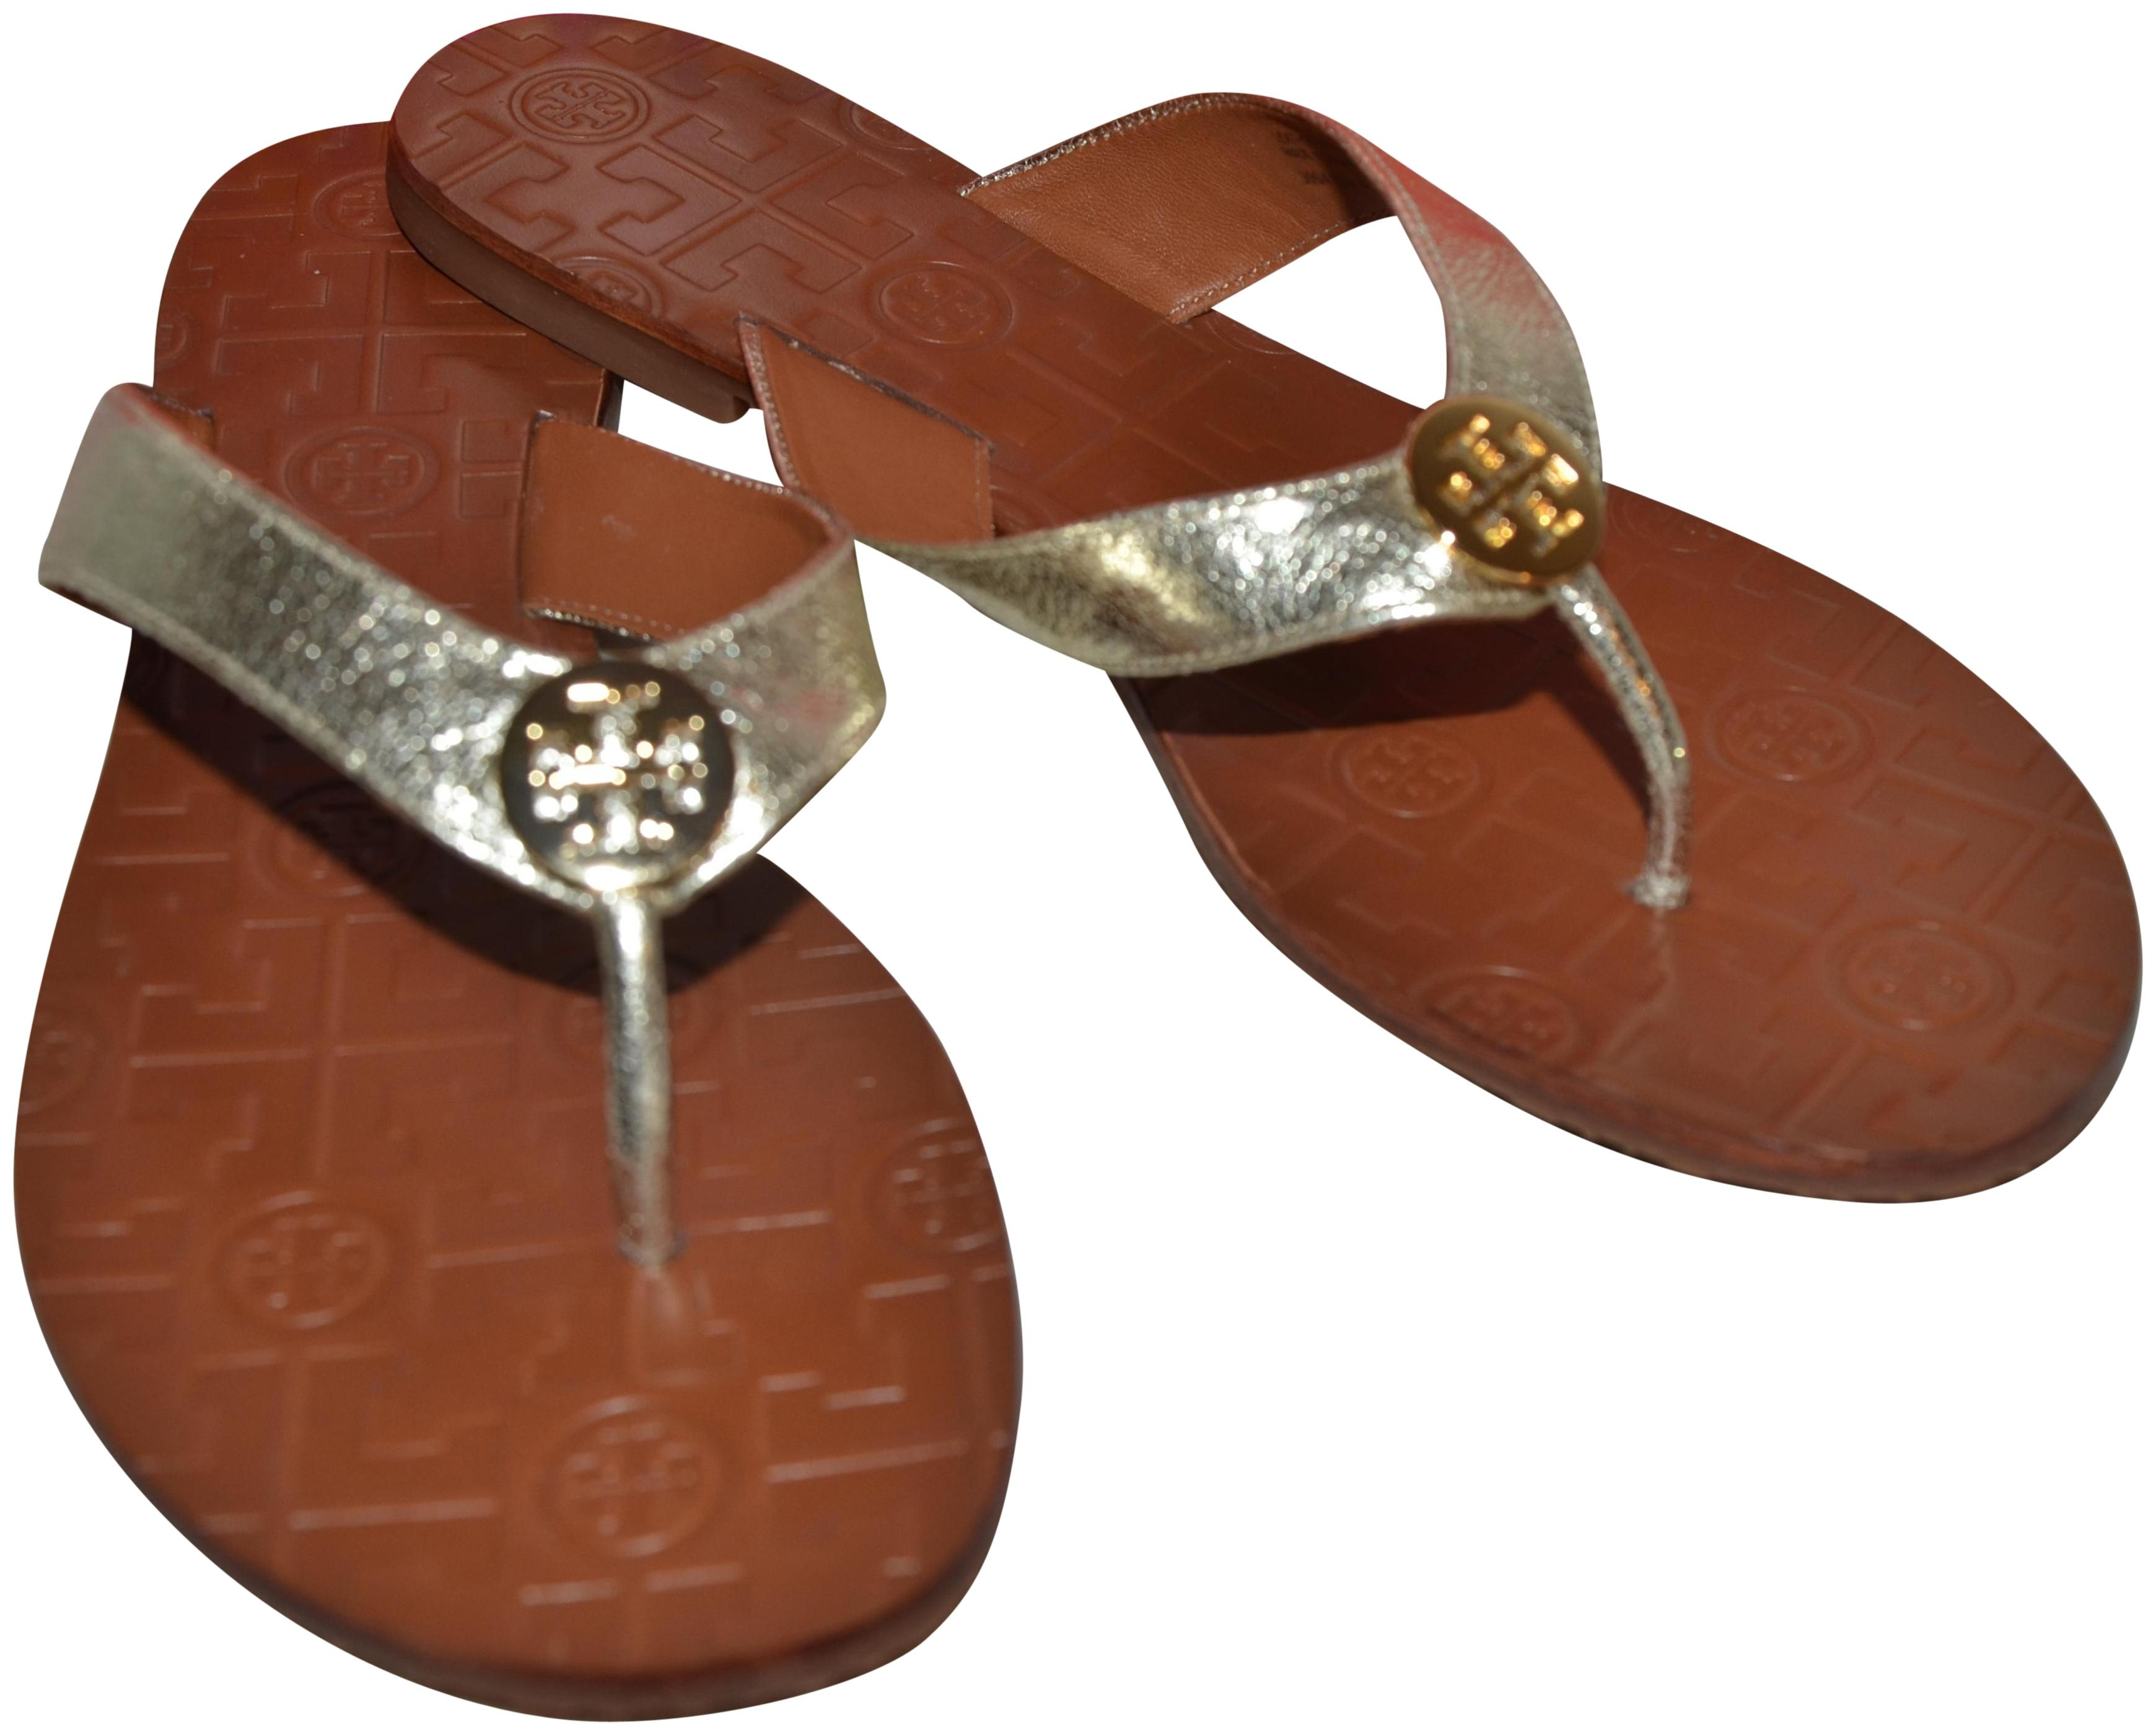 b717d4f73404c2 cheapest lyst tory burch thora thong sandal in metallic ad82d 6eefd  low  price tory burch flip flops spark gold sandals. 1234567 fa4d9 a794d